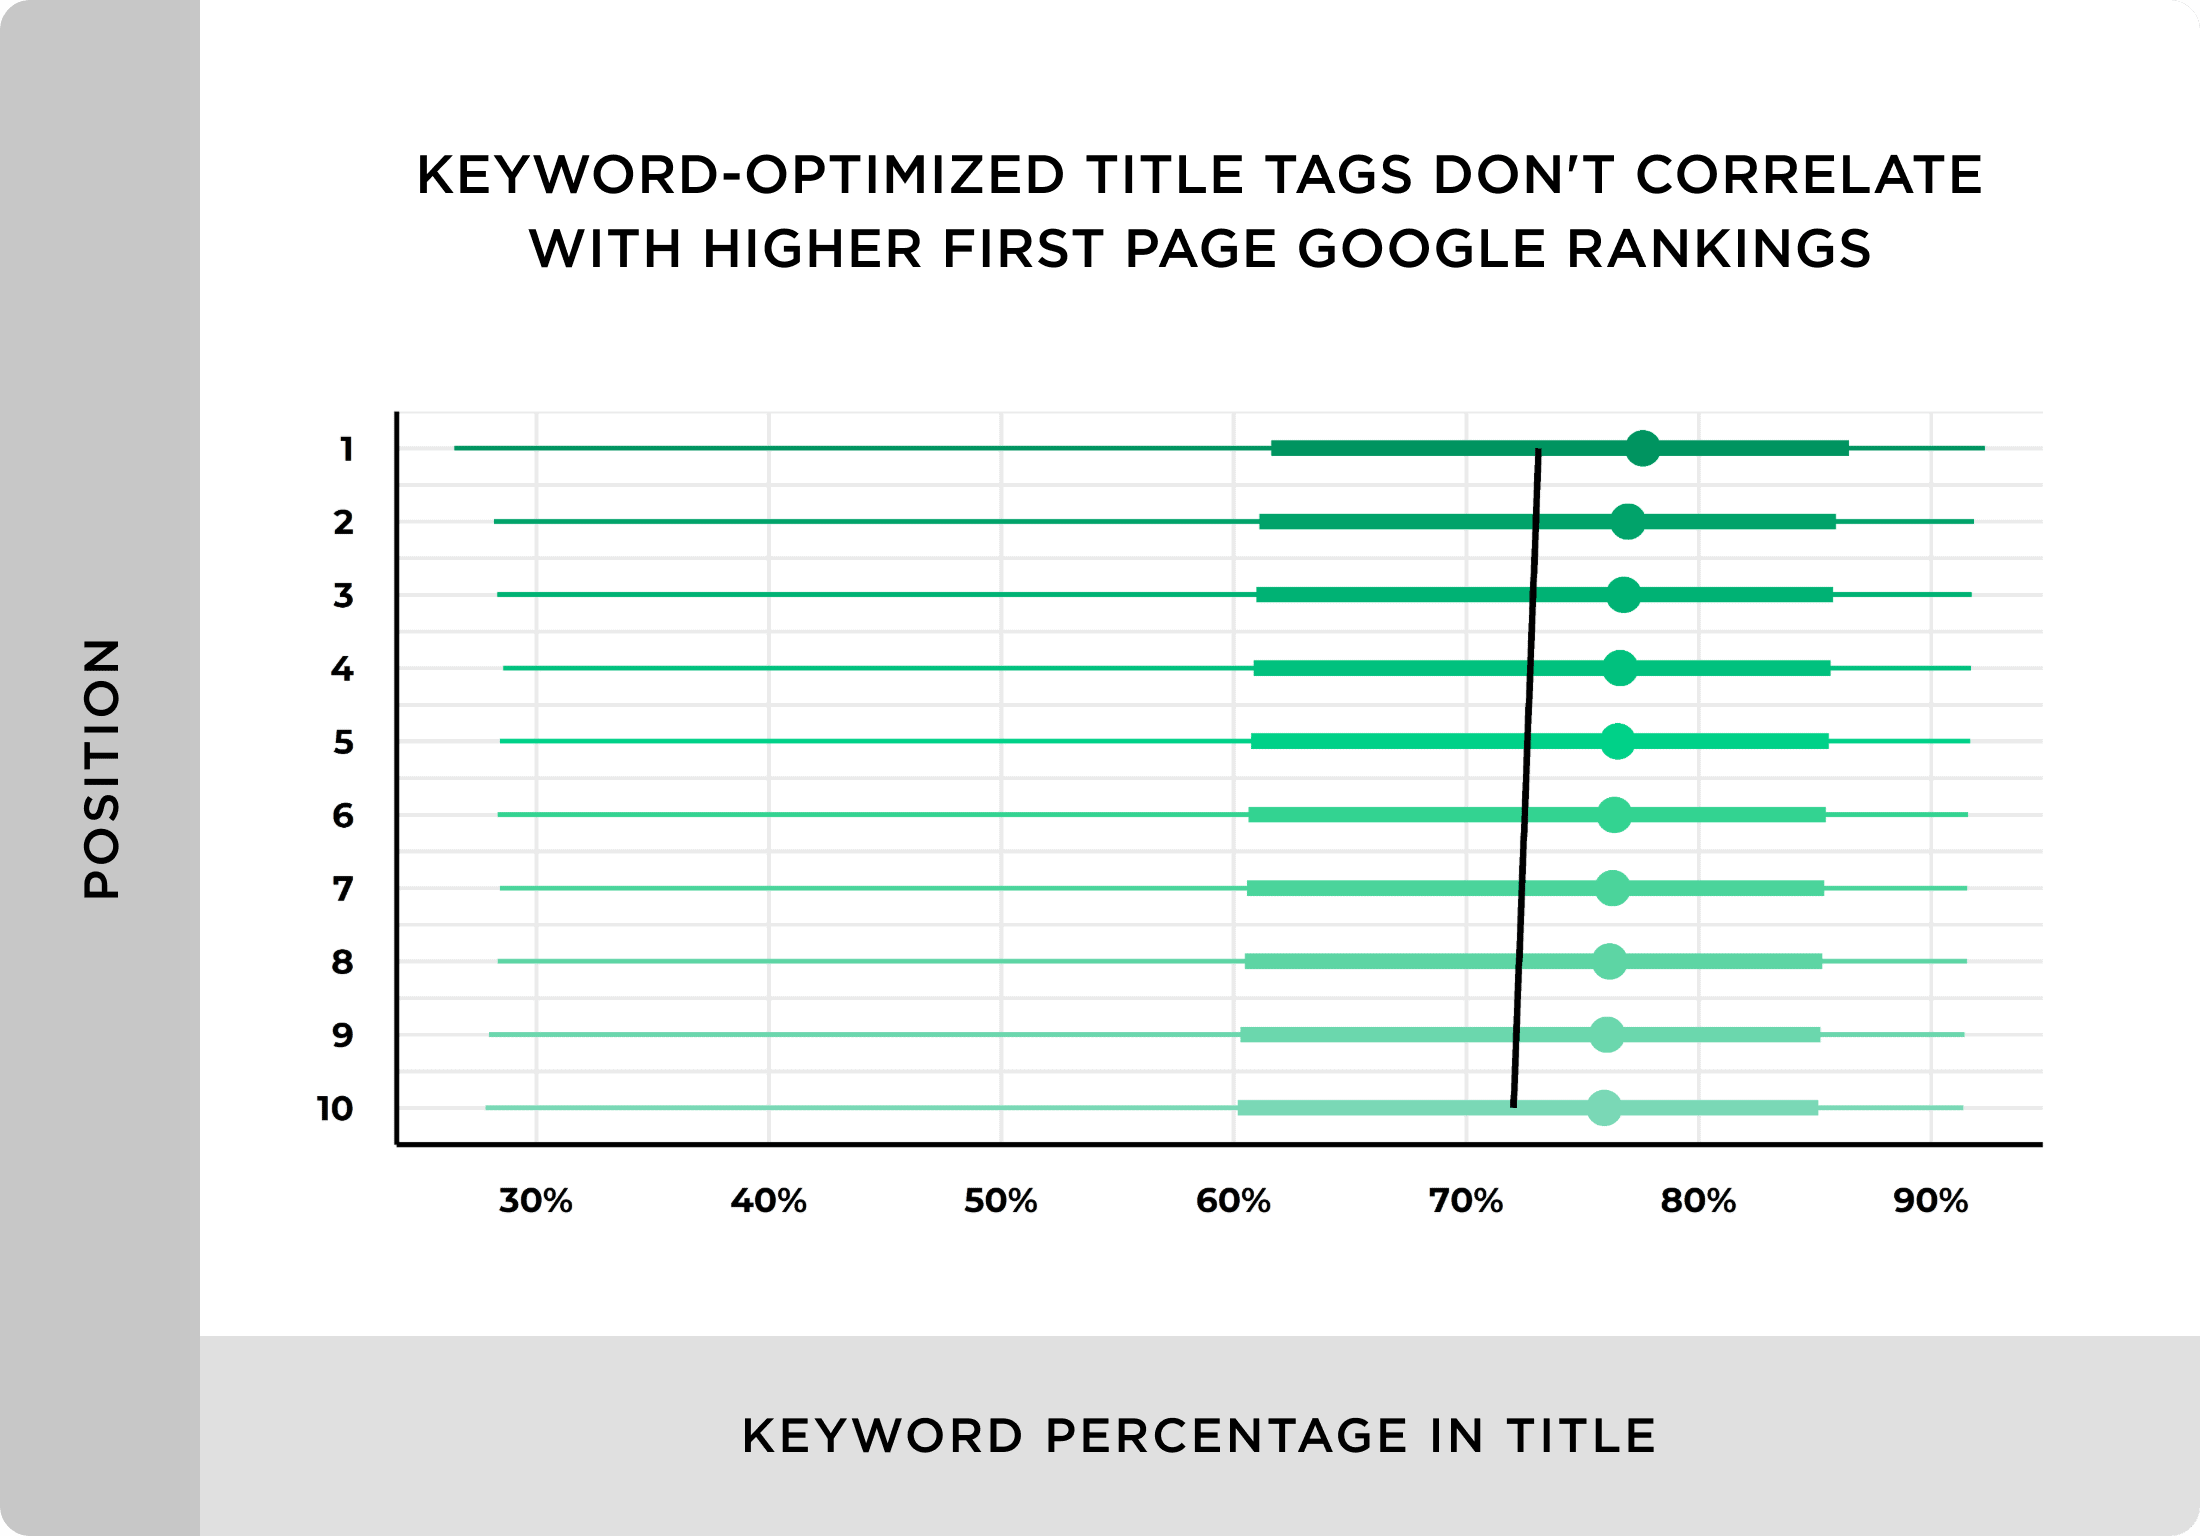 Keyword optimized title tags don't correlate with higher first page Google rankings